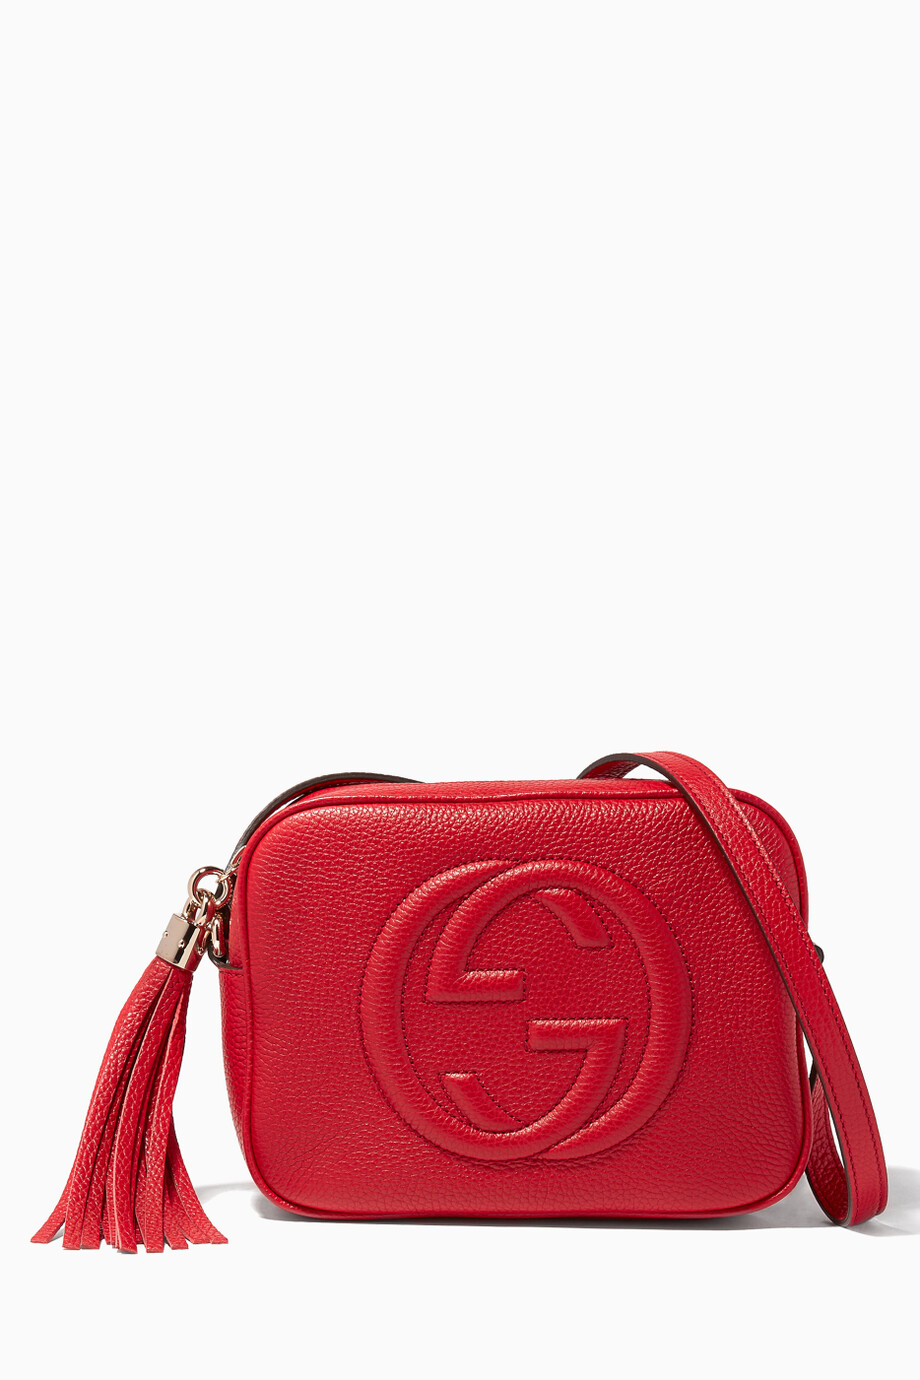 7445c07cec2 Shop Gucci Red Red Soho Leather Disco Bag for Women